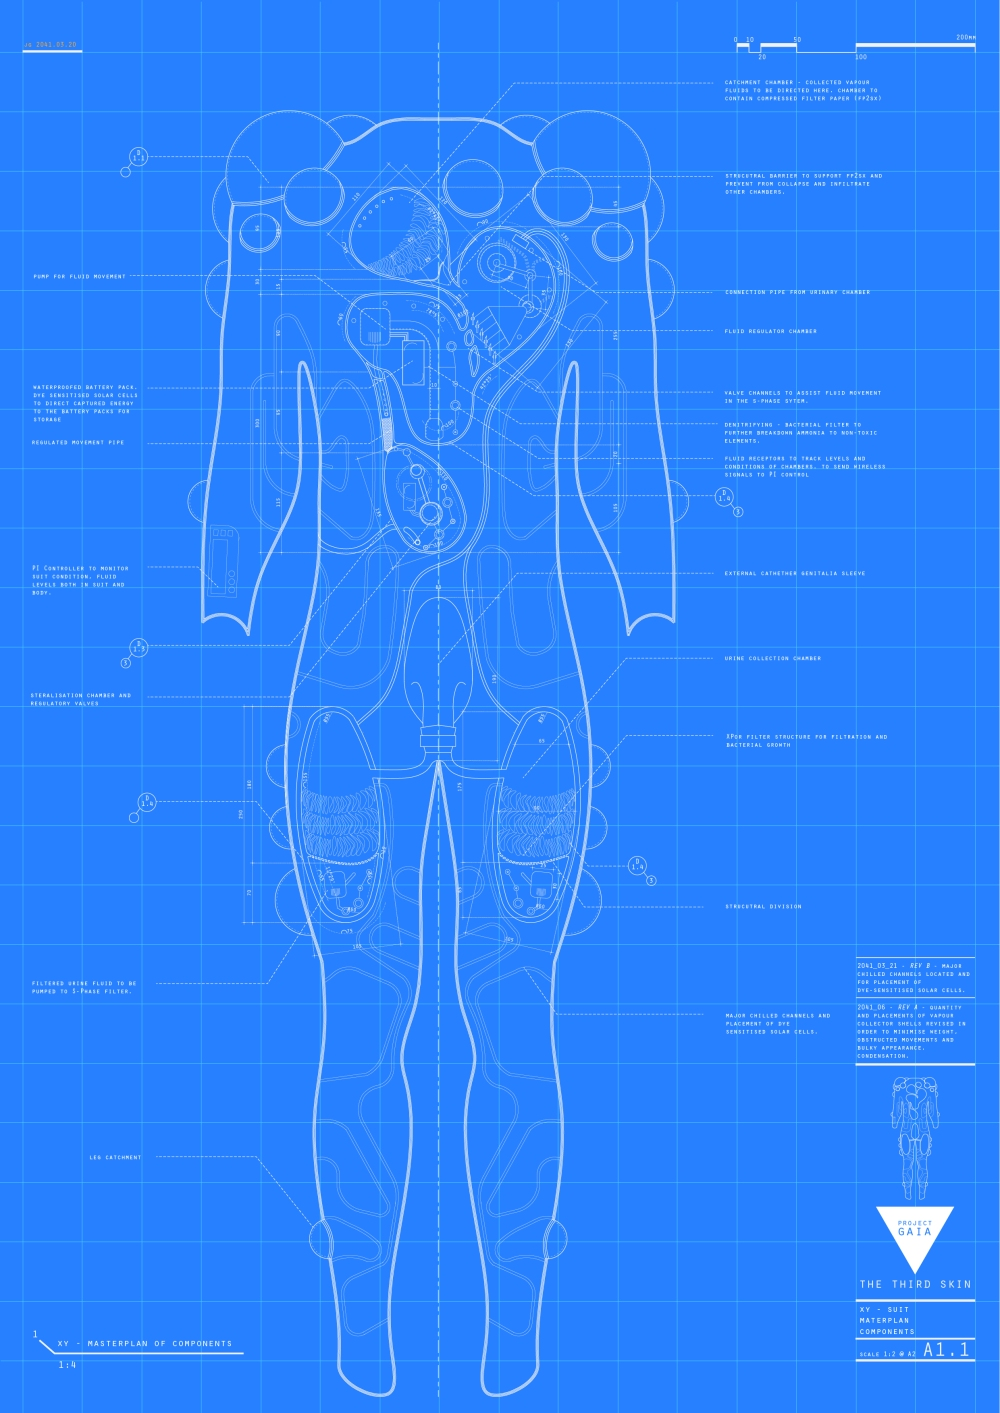 JOHNGATIP_BLUEPRINTS_THETHIRDSKIN_1